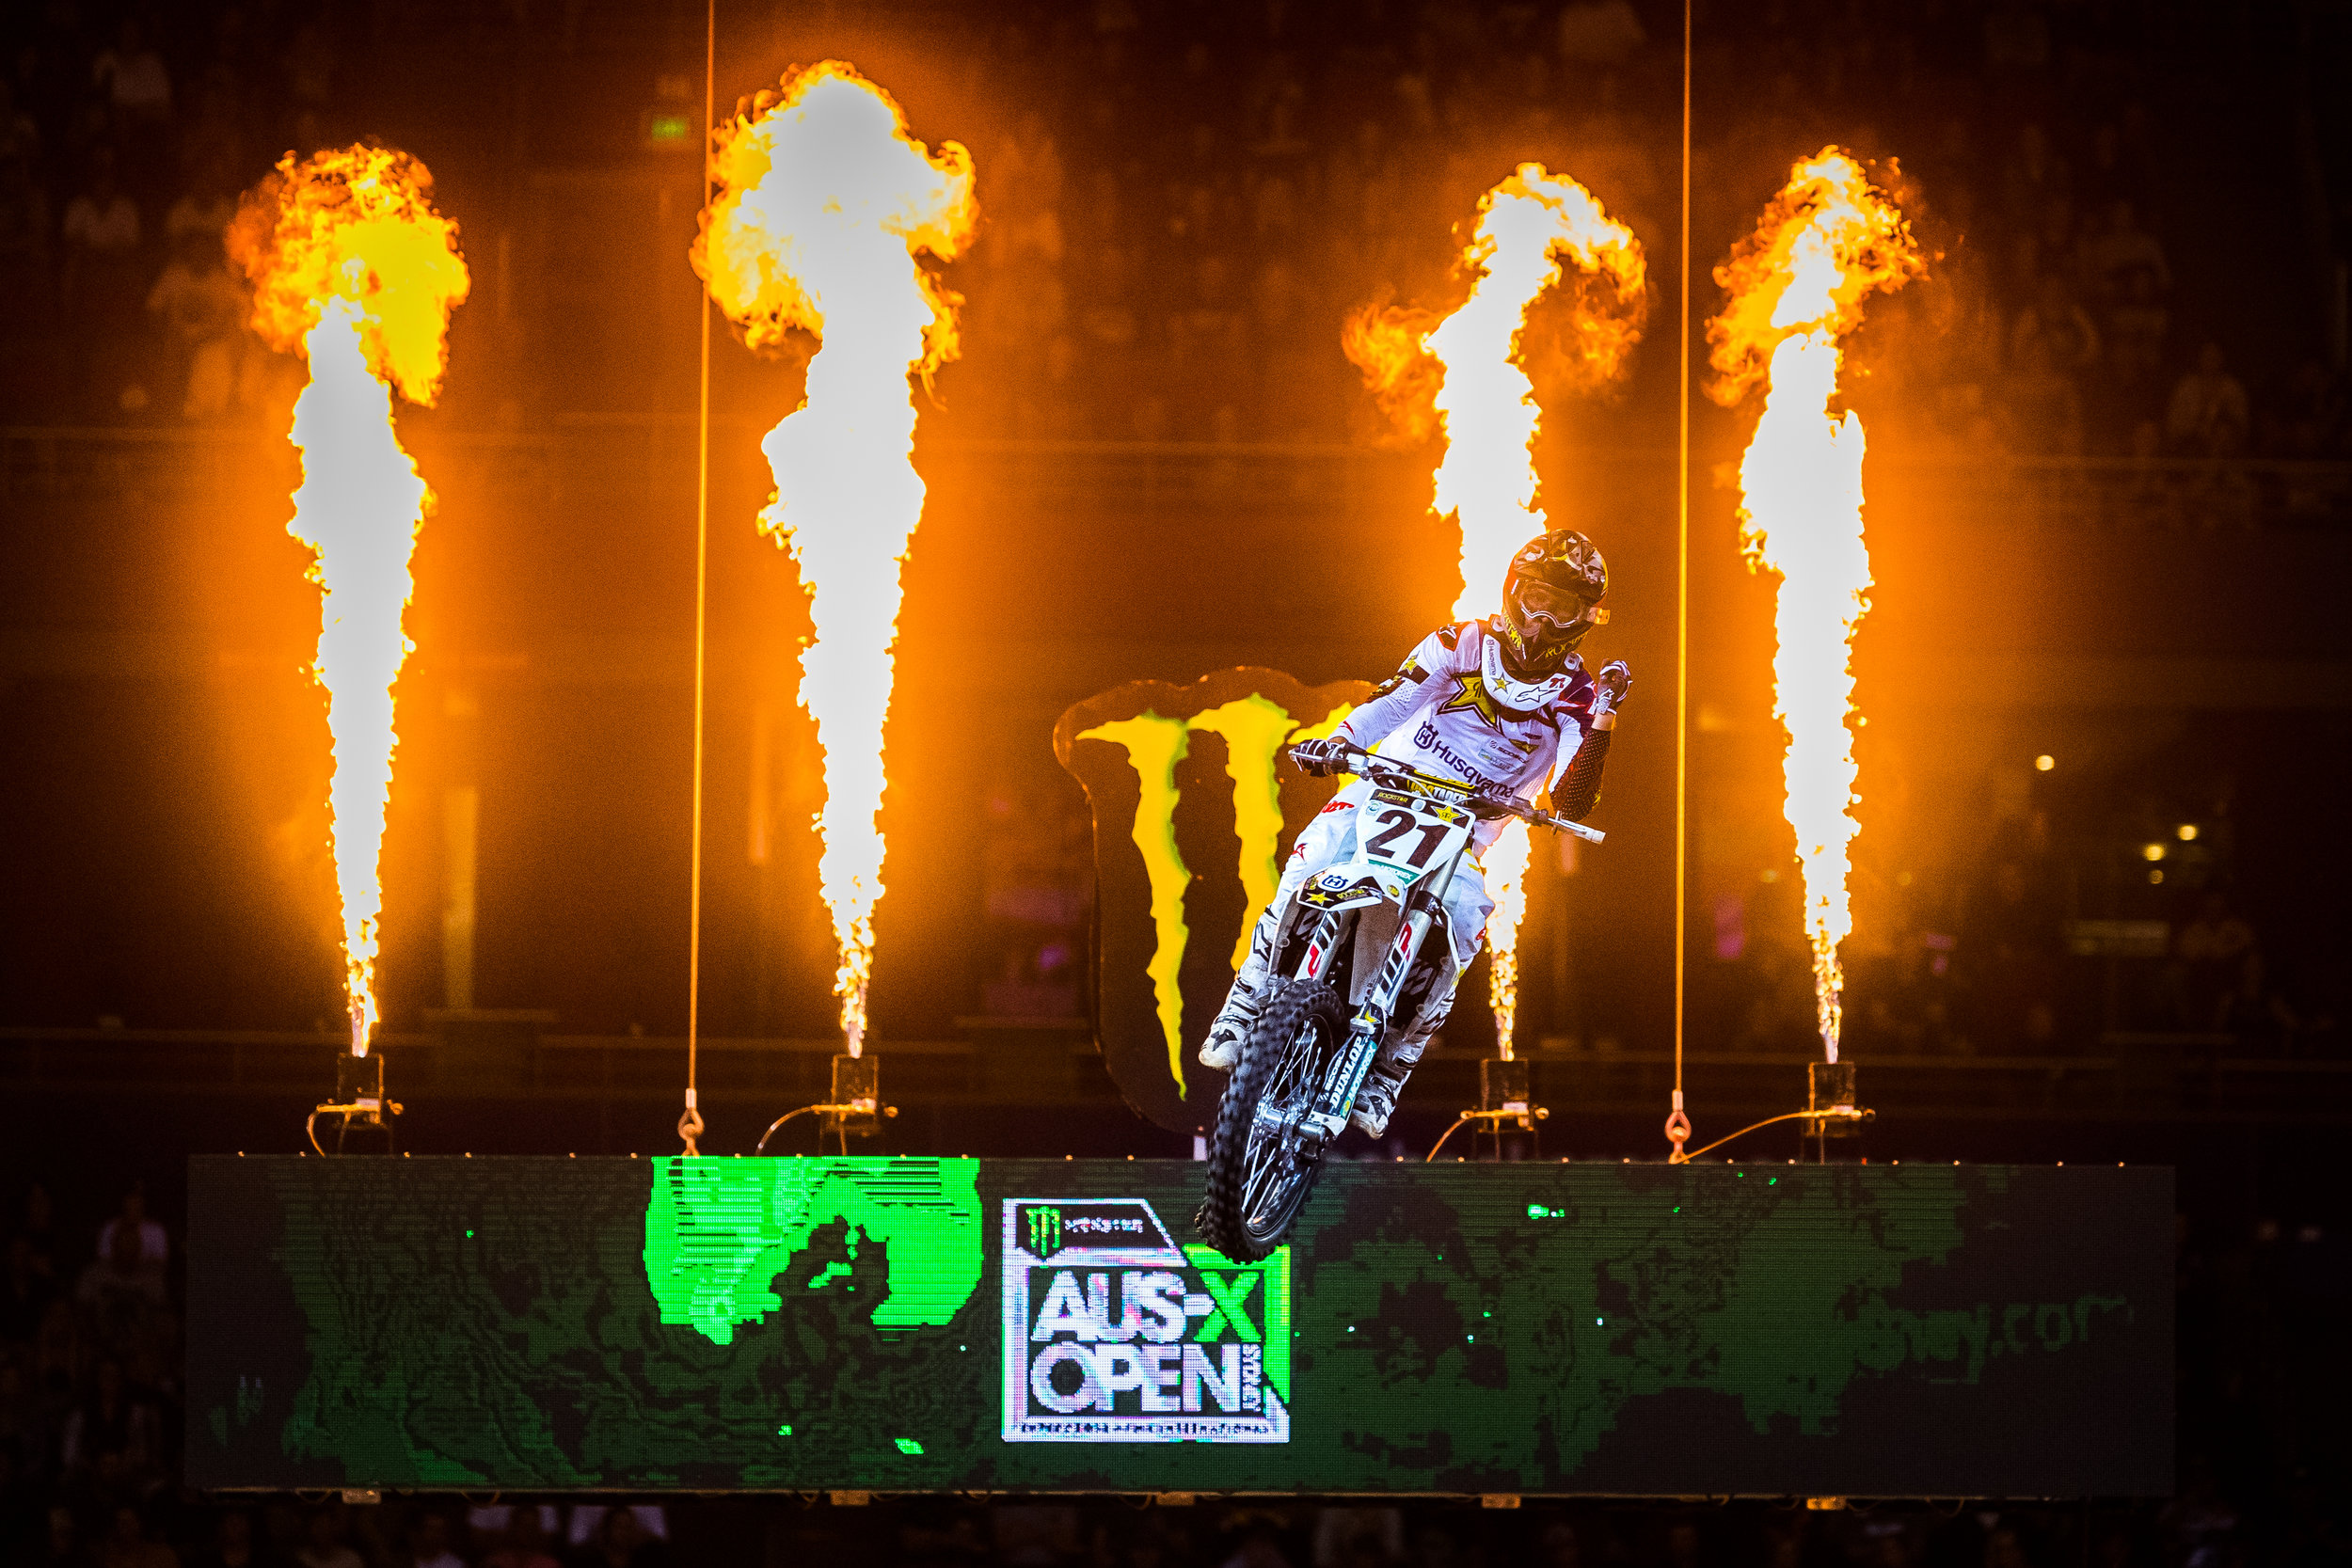 JASON ANDERSON - CREDIT - Monster Energy S-X Open Auckland .jpg